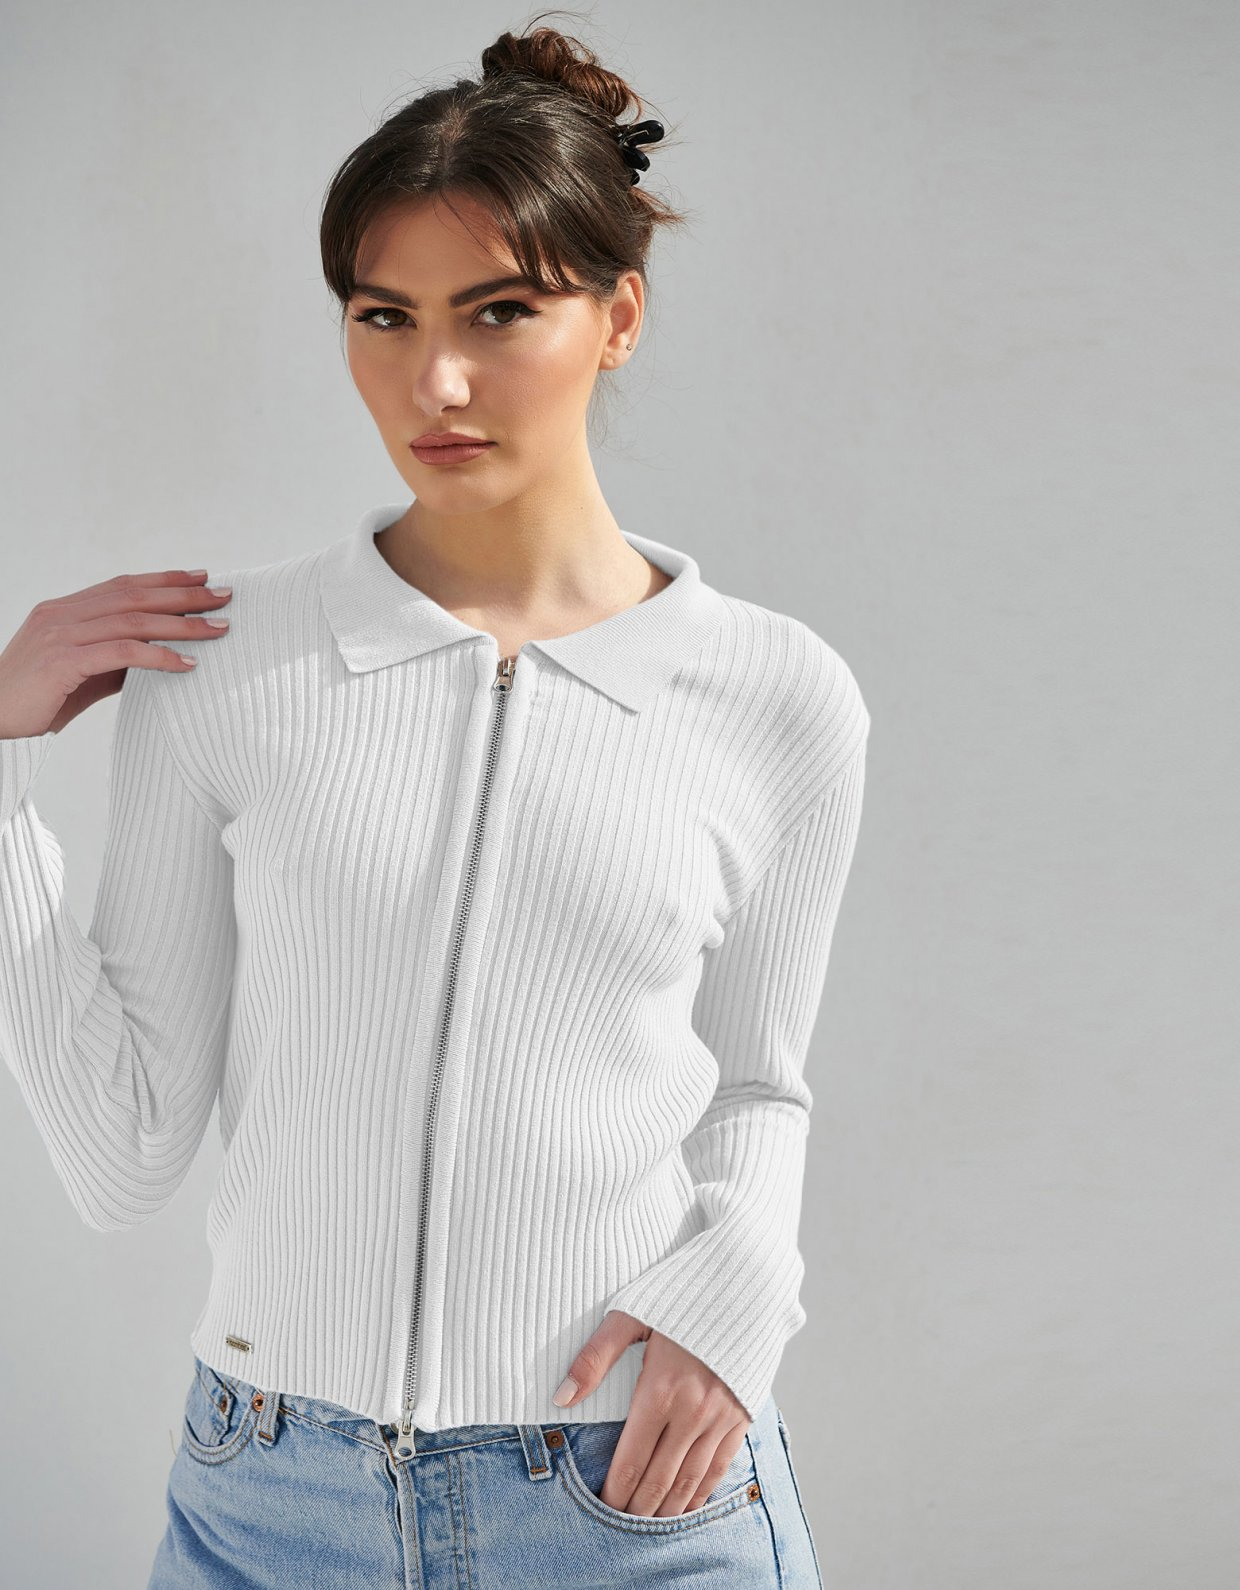 Combos Knitwear Combos S8 – White polo cardigan